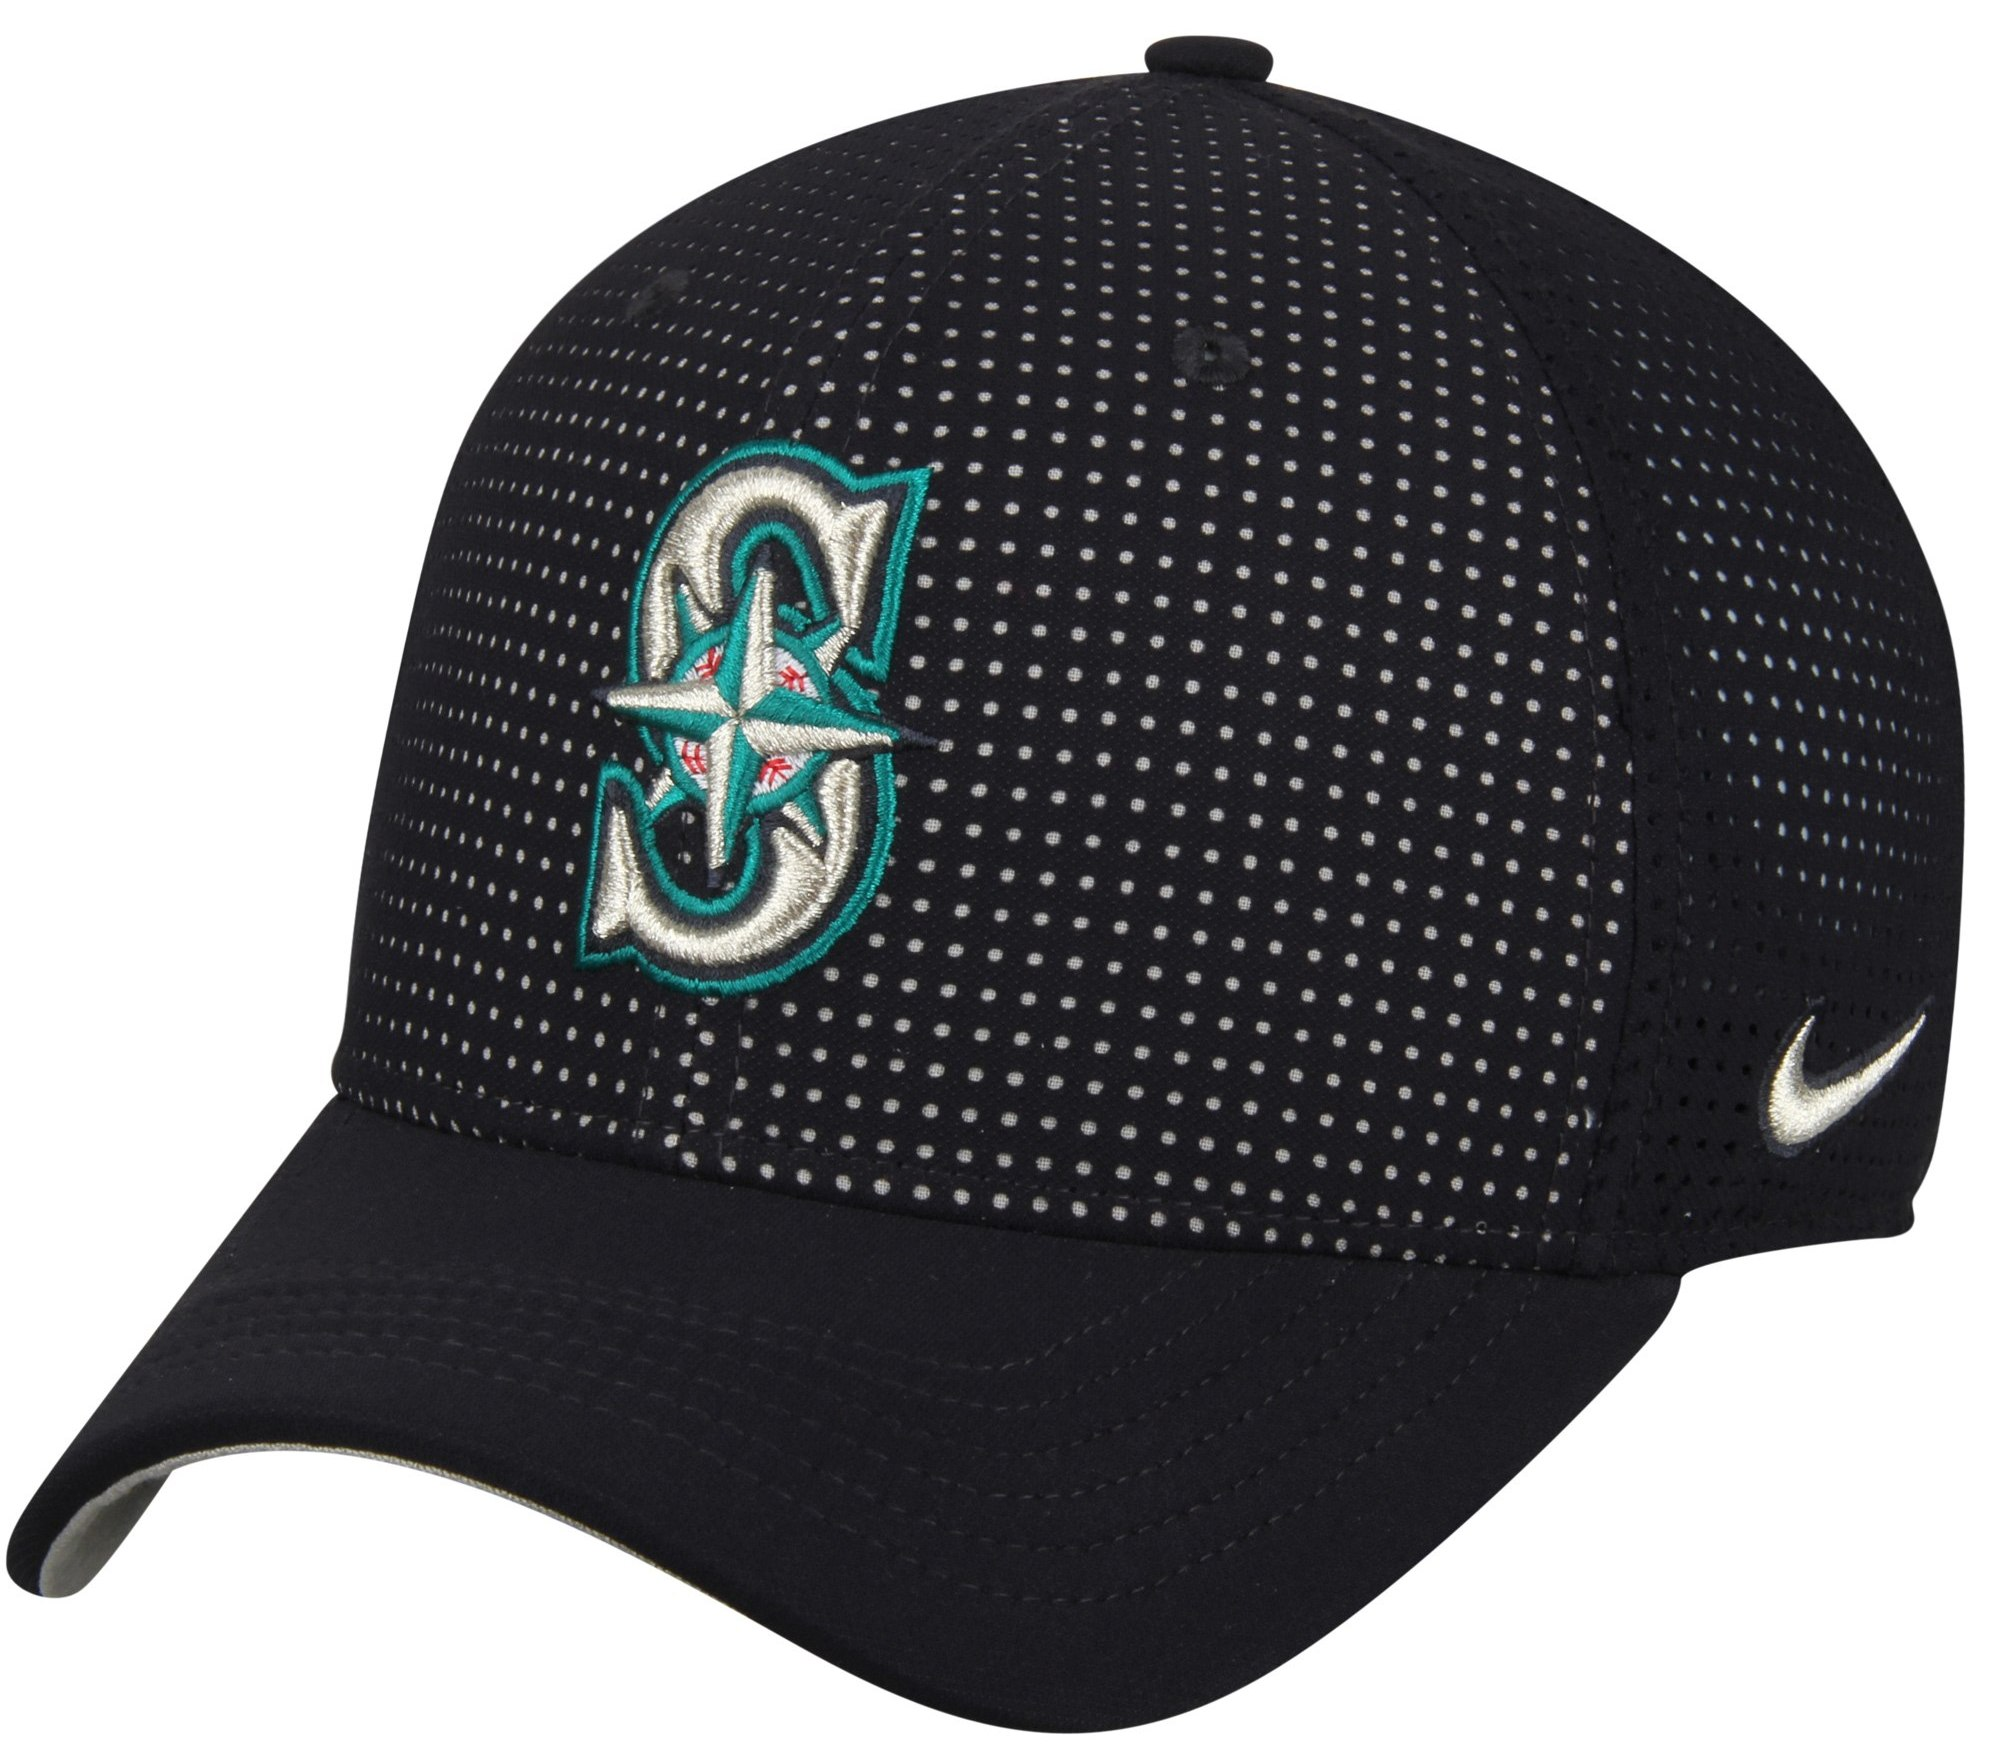 Seattle Mariners Nike AeroBill Classic 99 Performance Adjustable Hat - Navy